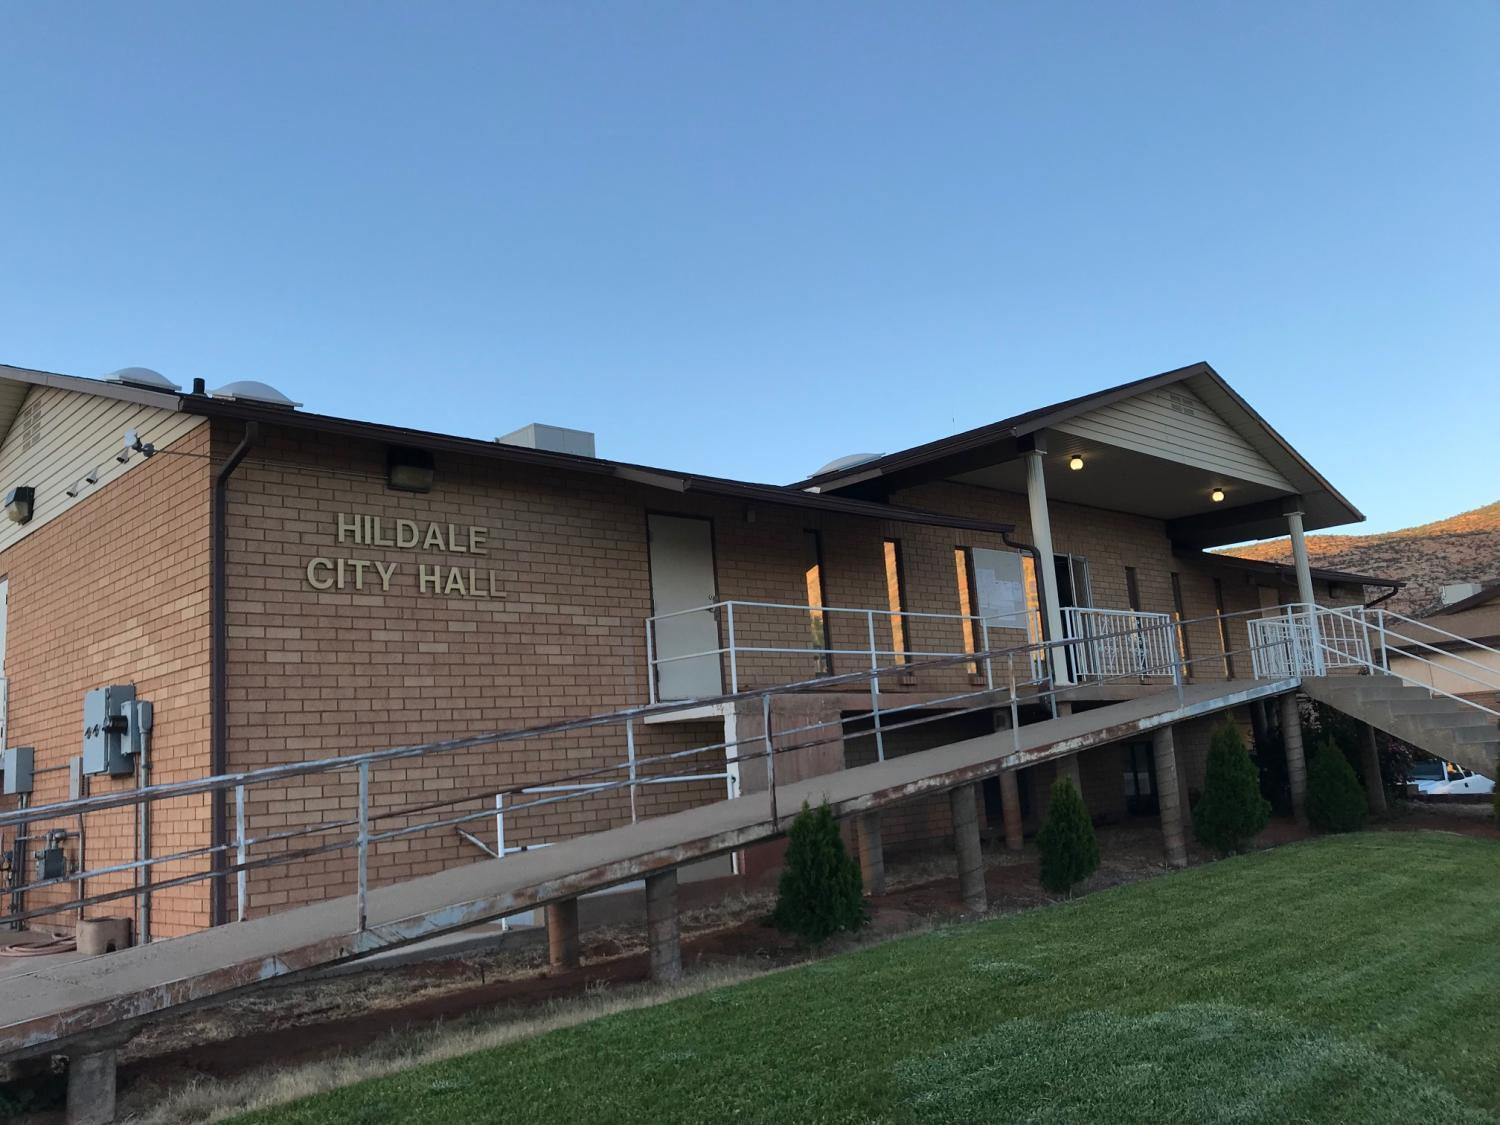 Hildale City Hall